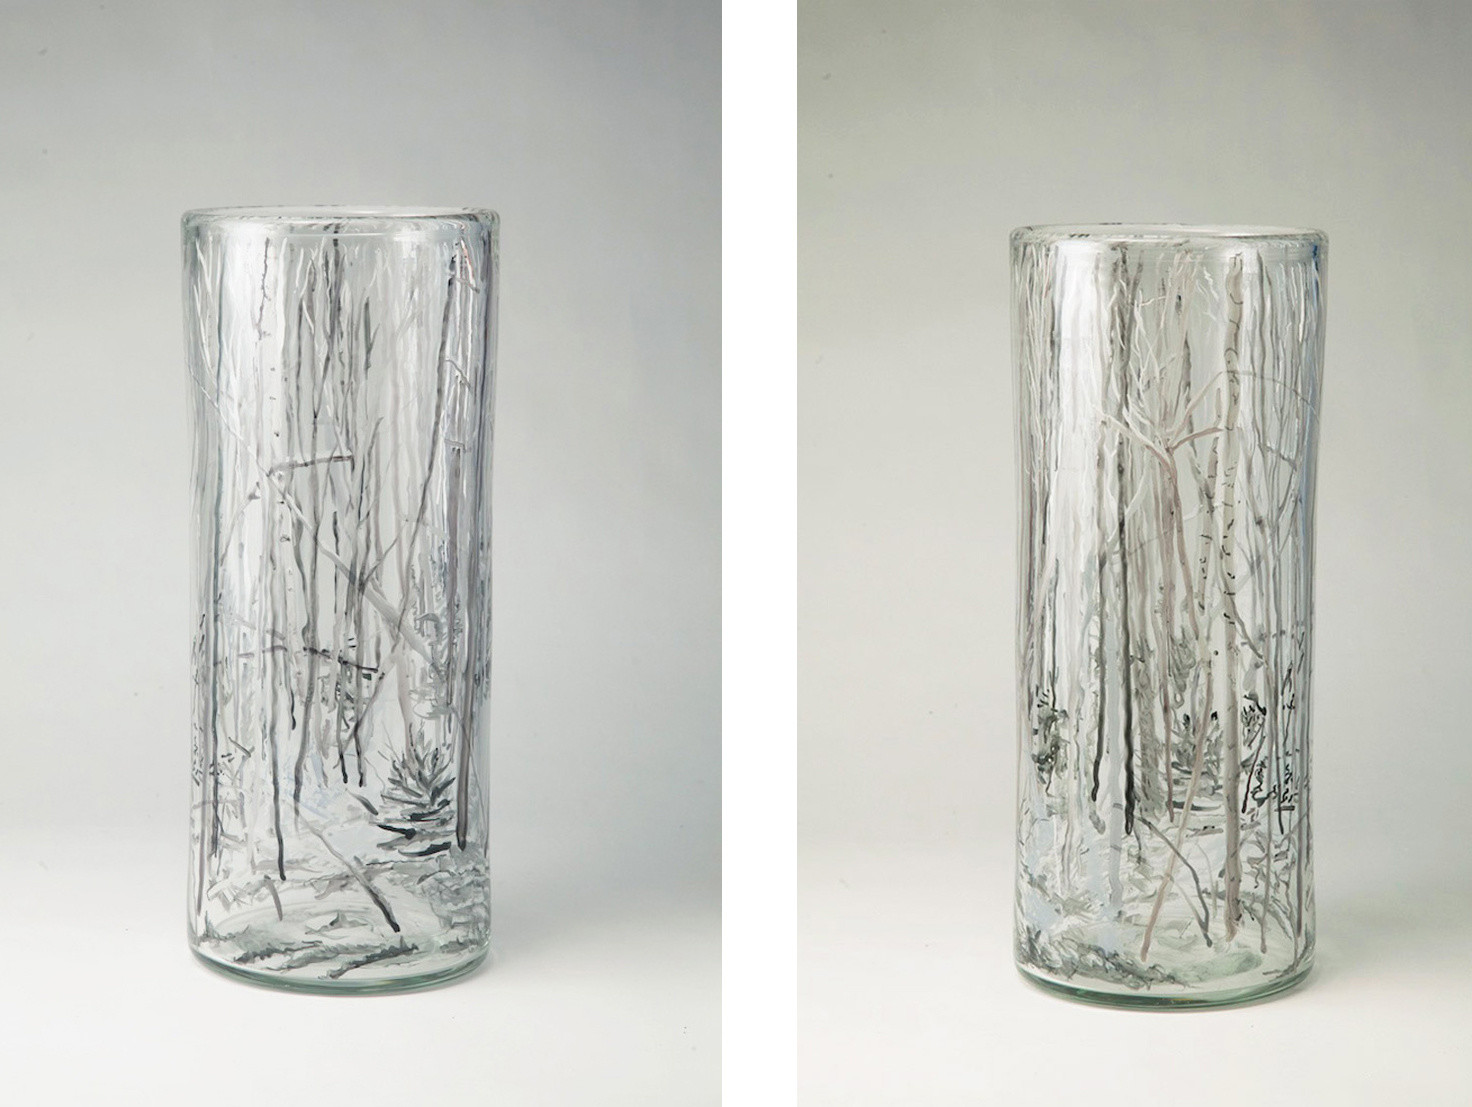 8 inch glass vase of glass emily brown pertaining to woods with birches